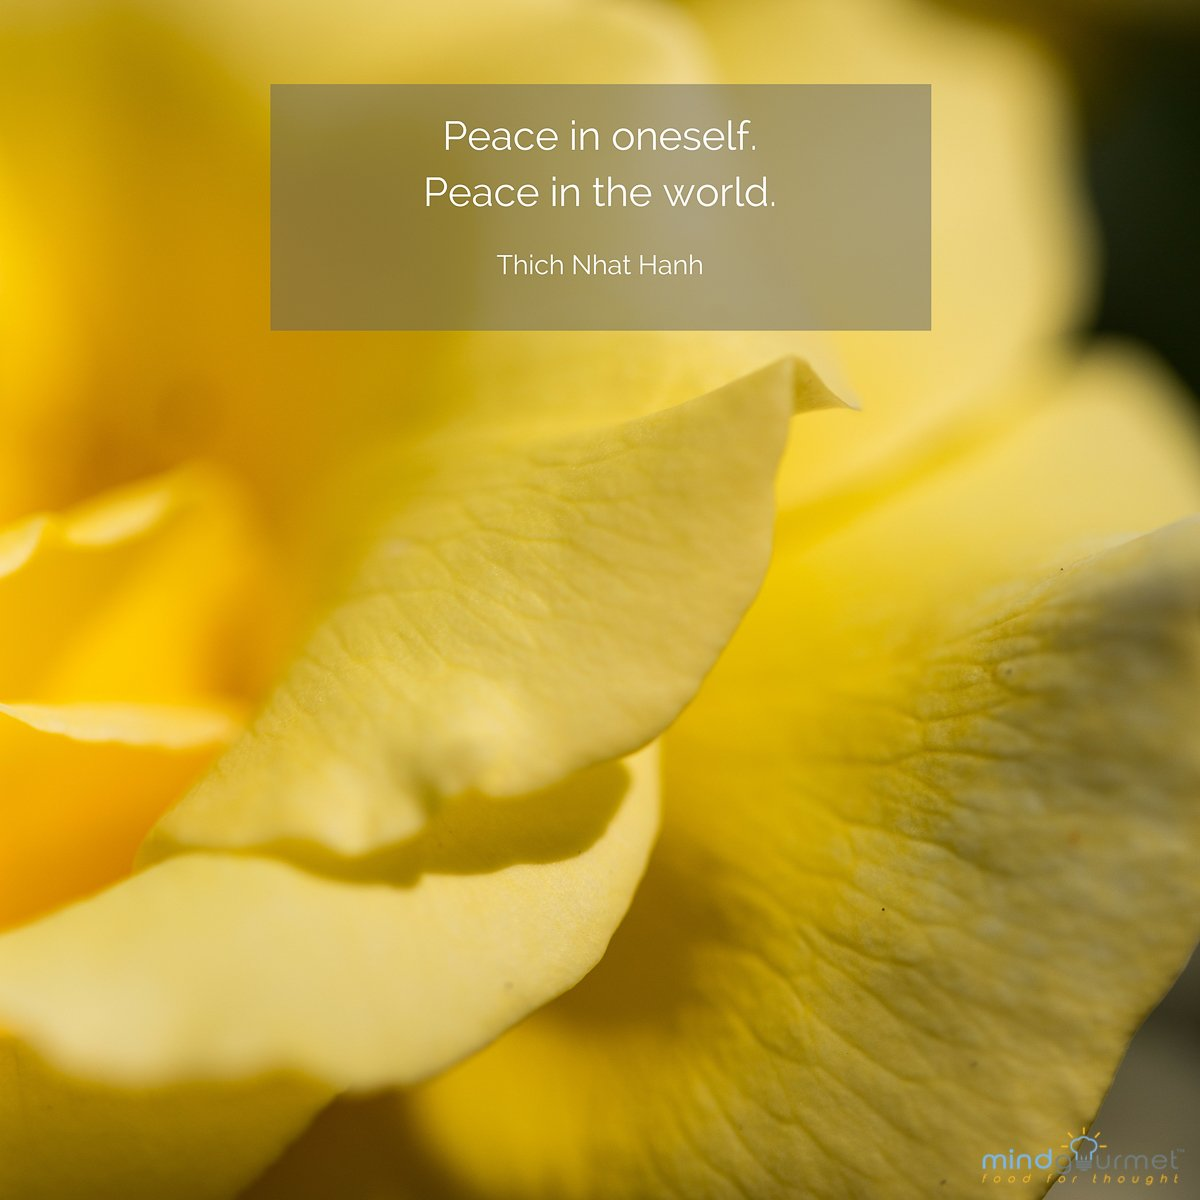 Peace in oneself. Peace in the world. - Thich Nhat Hanh @thichnhathanh #innerpeace #peace <br>http://pic.twitter.com/ceDnaFOHIU